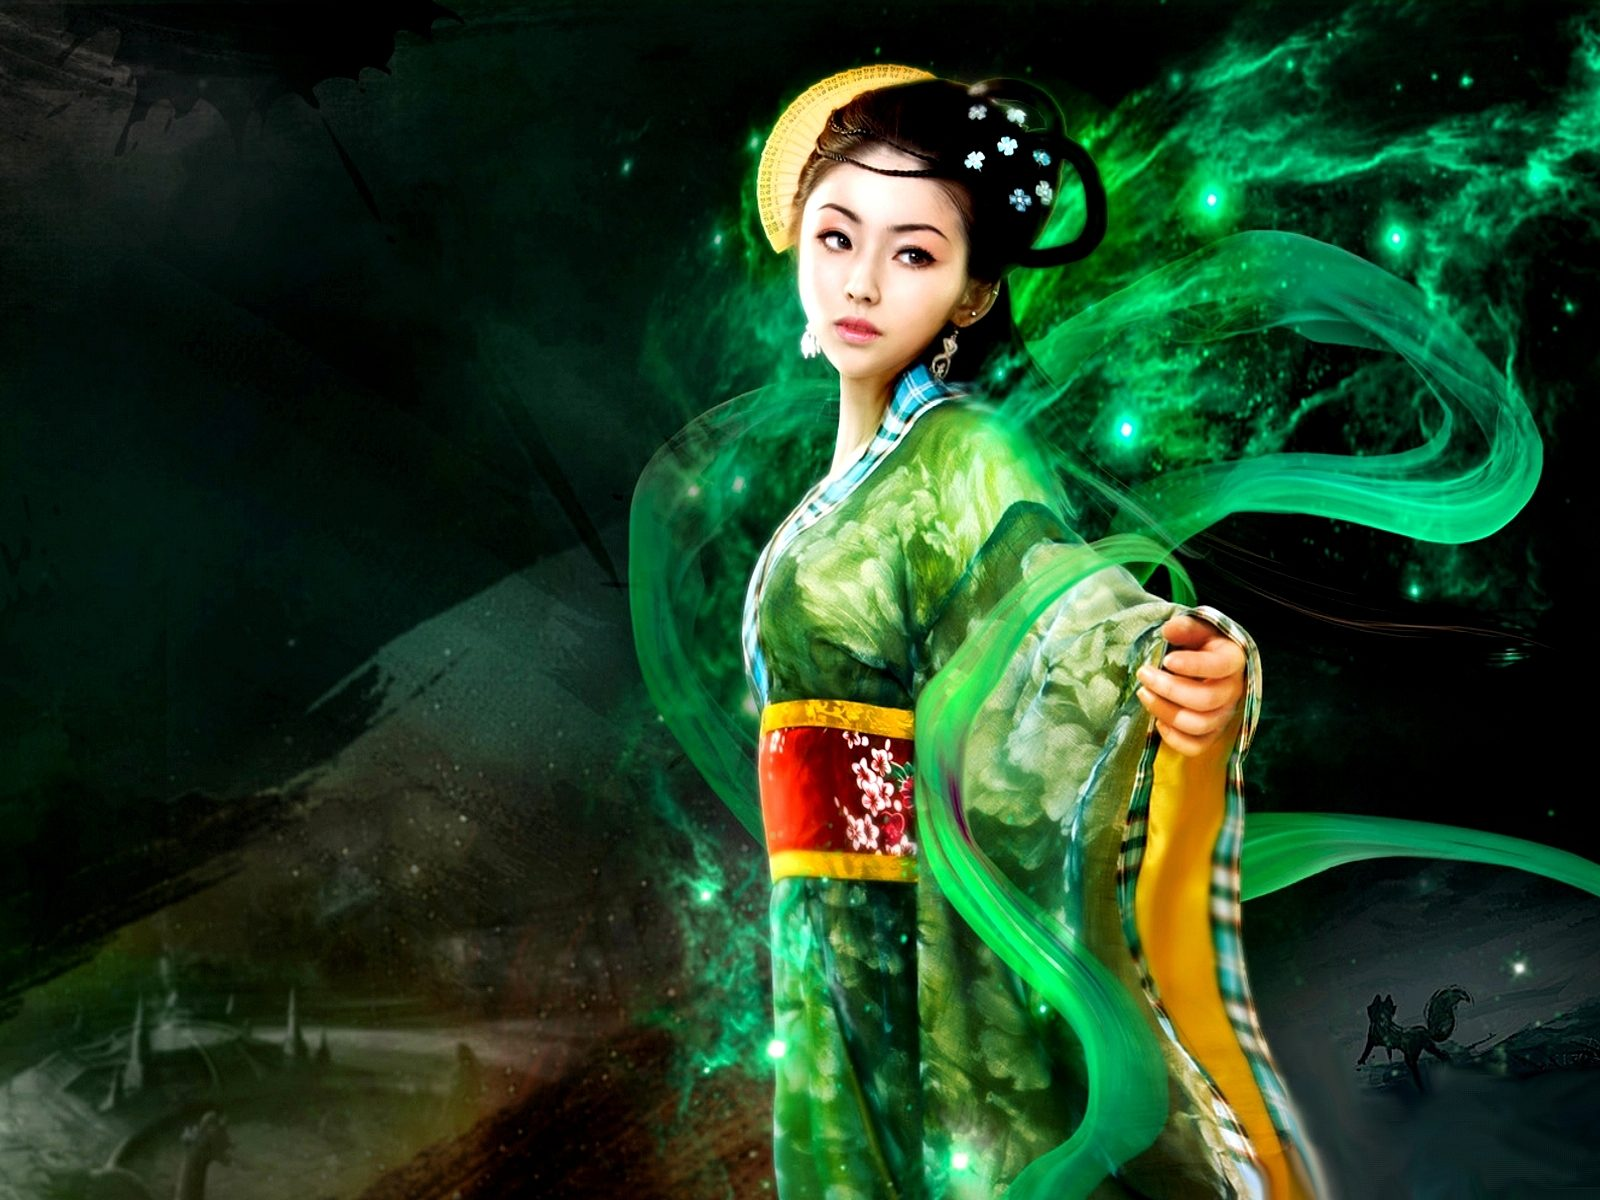 Beautiful Girl Hd Wallpaper For Pc Oriental Princess 245948 Wallpapers13 Com